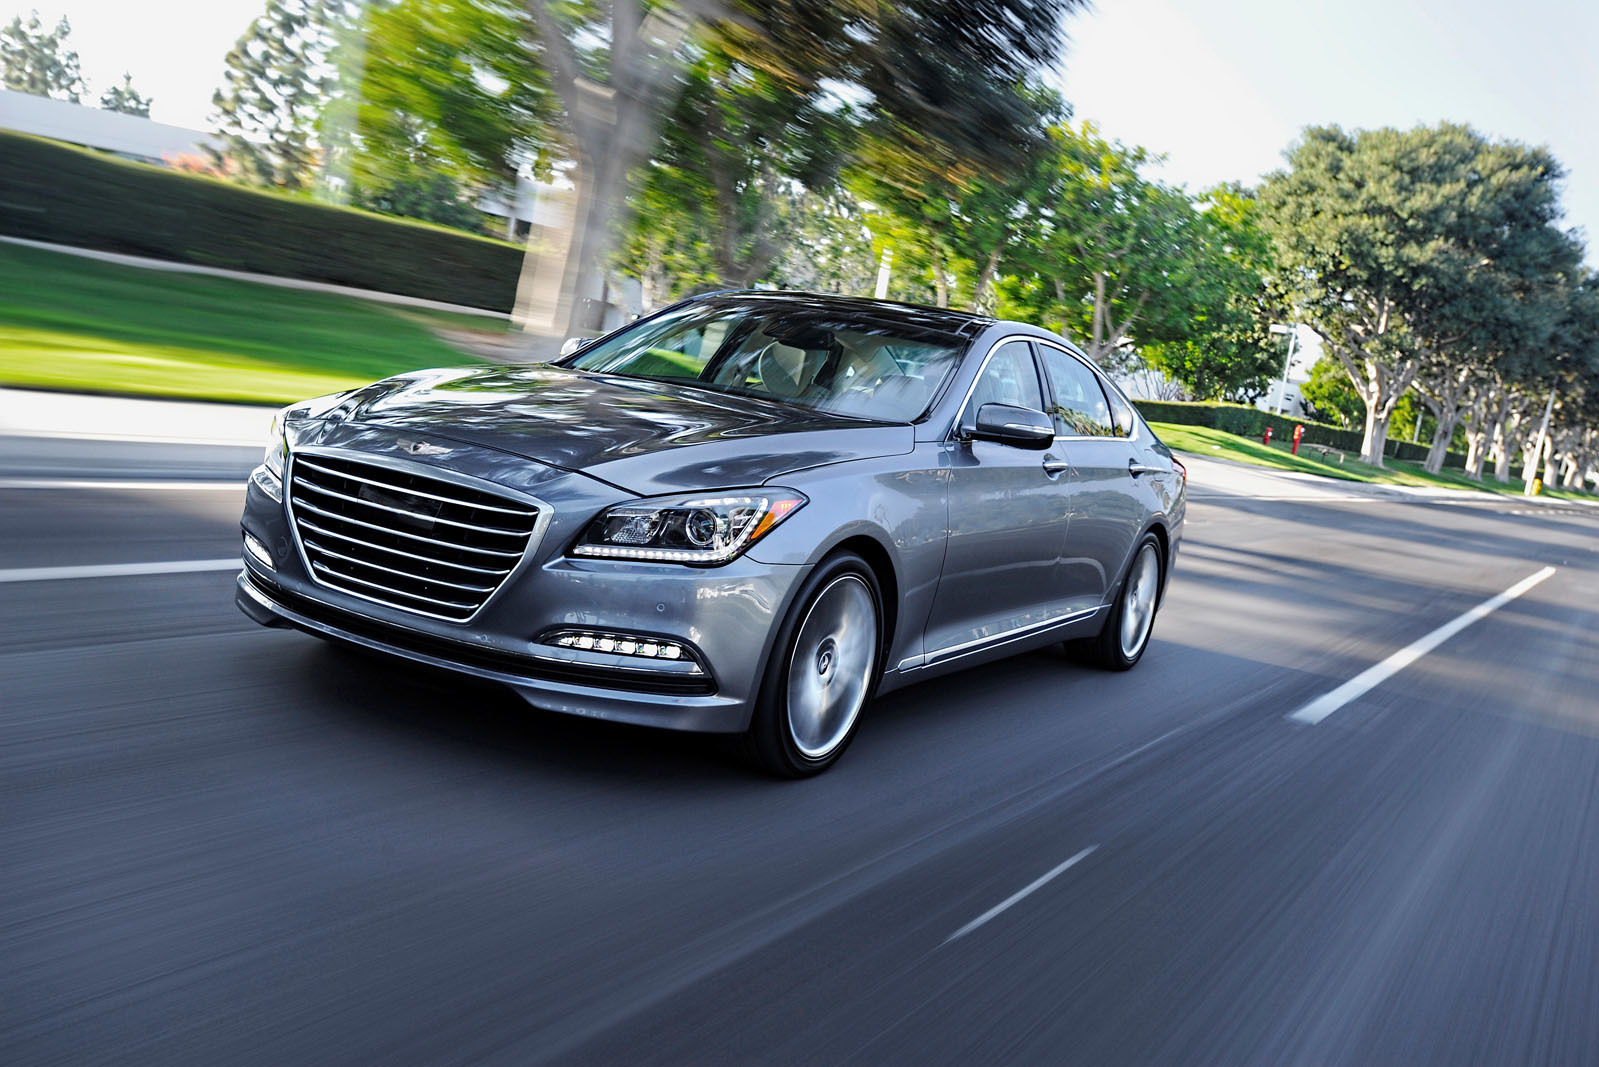 luxury size a full prince review rwd hyundai among side genesis test sedan drive